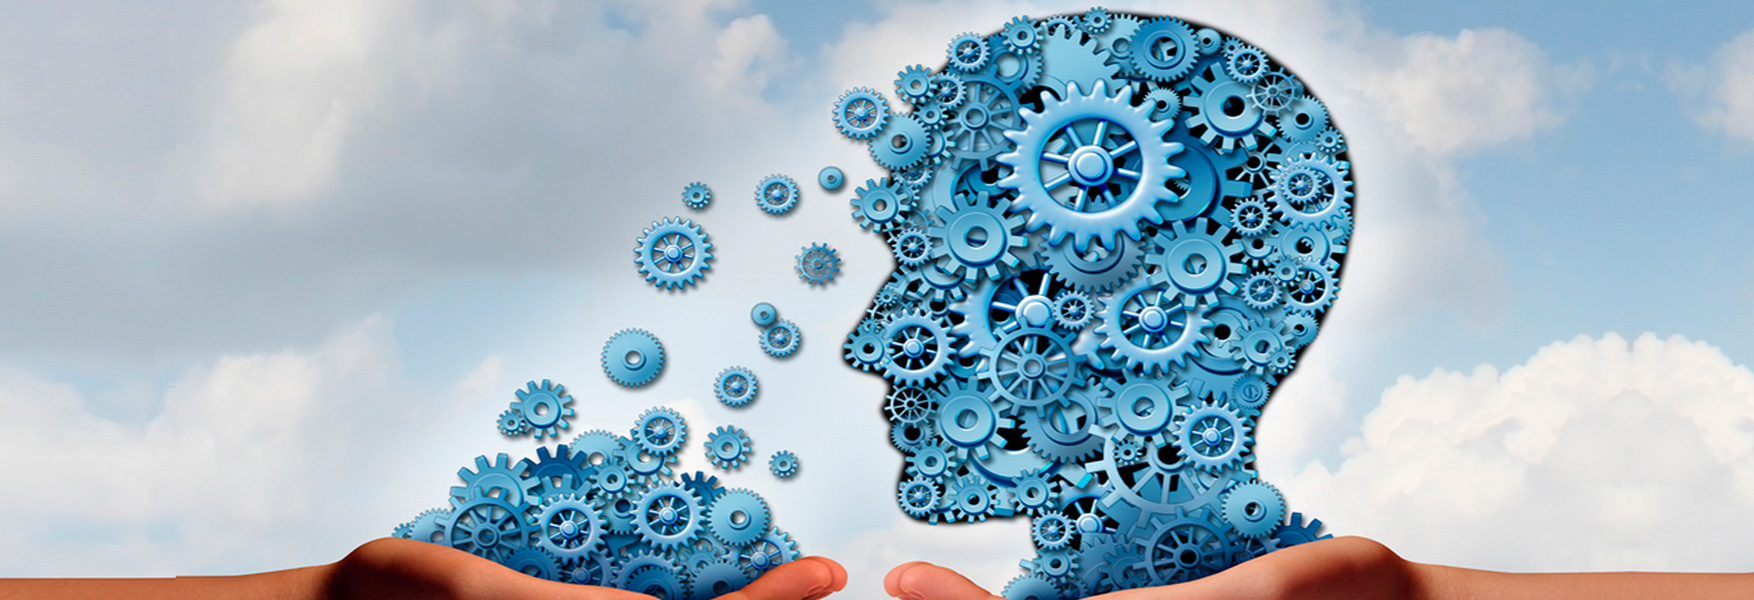 Ethics Issues Raised By Human Enhancement Openmind